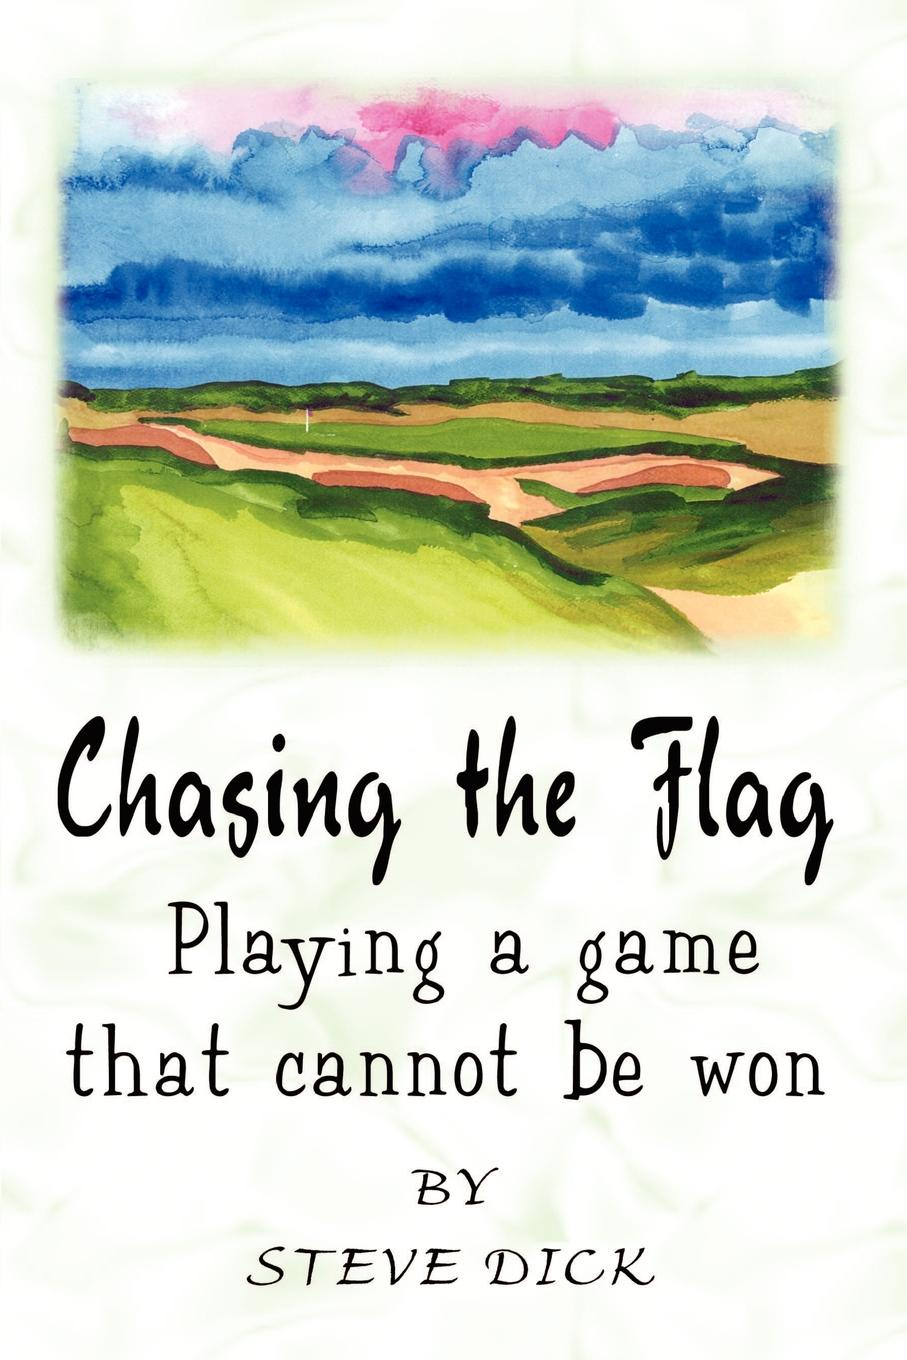 Steve Dick Chasing the Flag. Playing a game that cannot be won